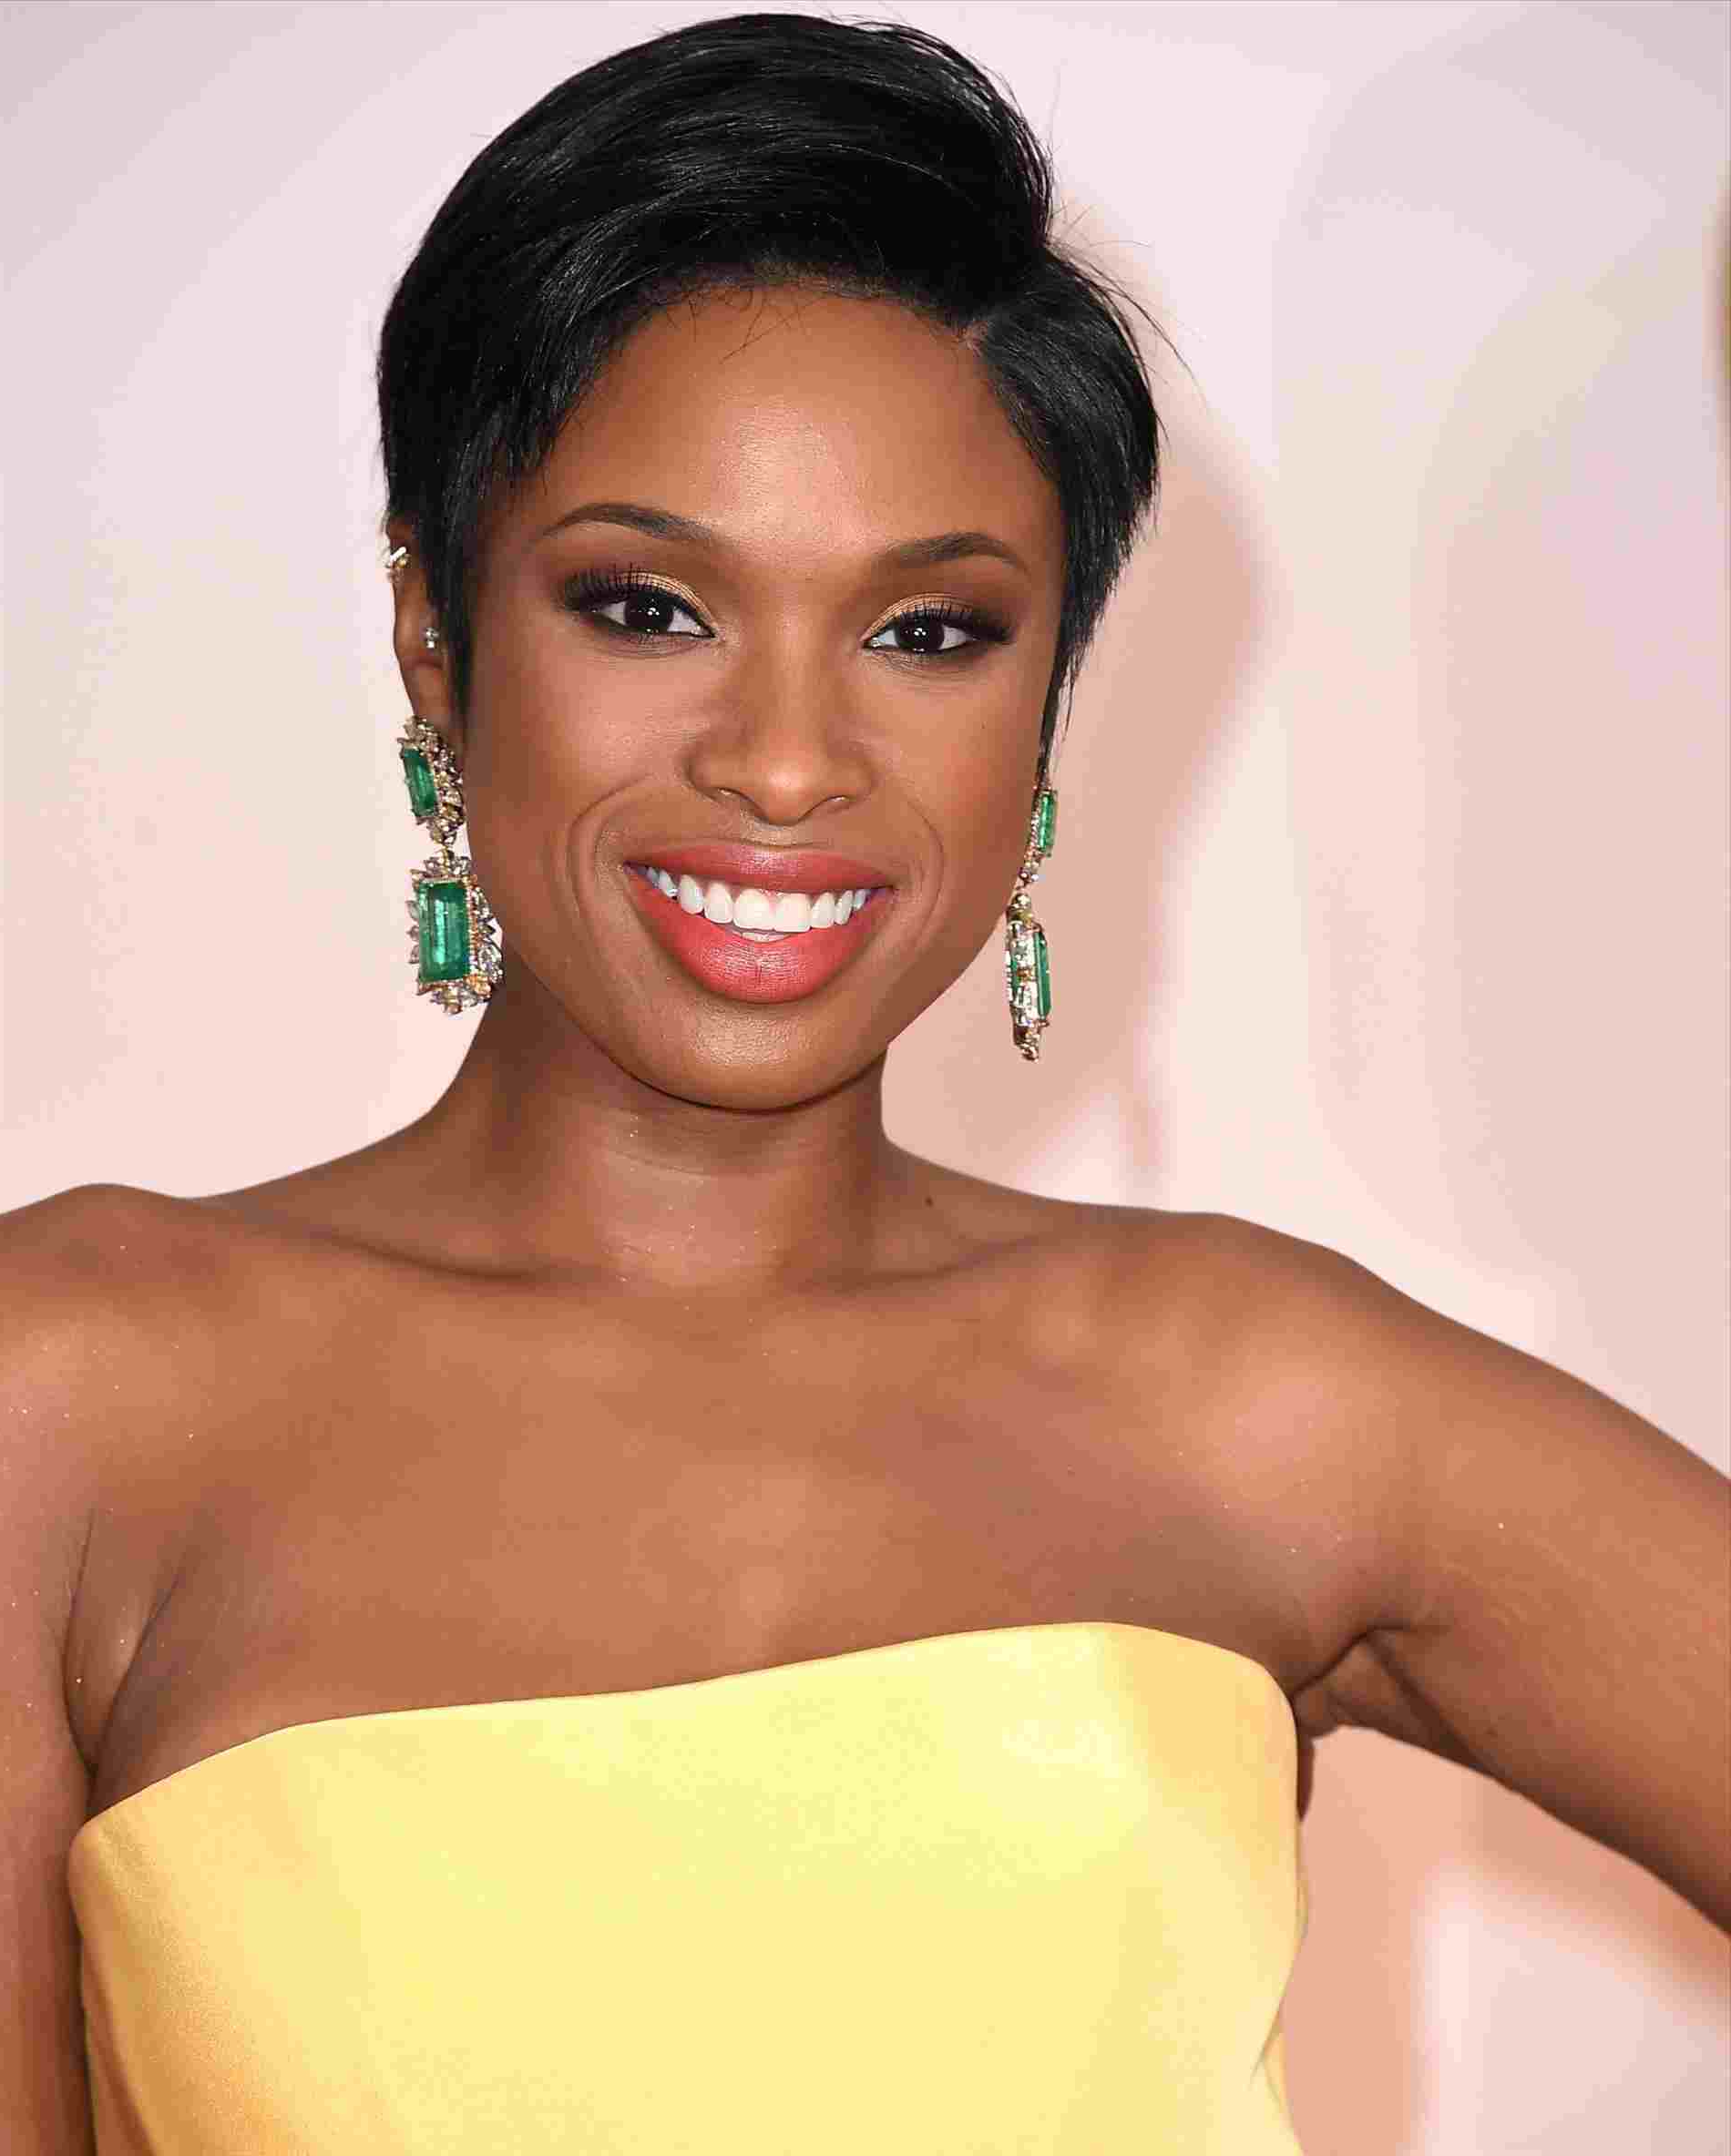 Short Haircuts For Black Women With Round Faces Hairstyle Pict Hair Regarding Short Haircuts For Black Women Round Face (View 22 of 25)